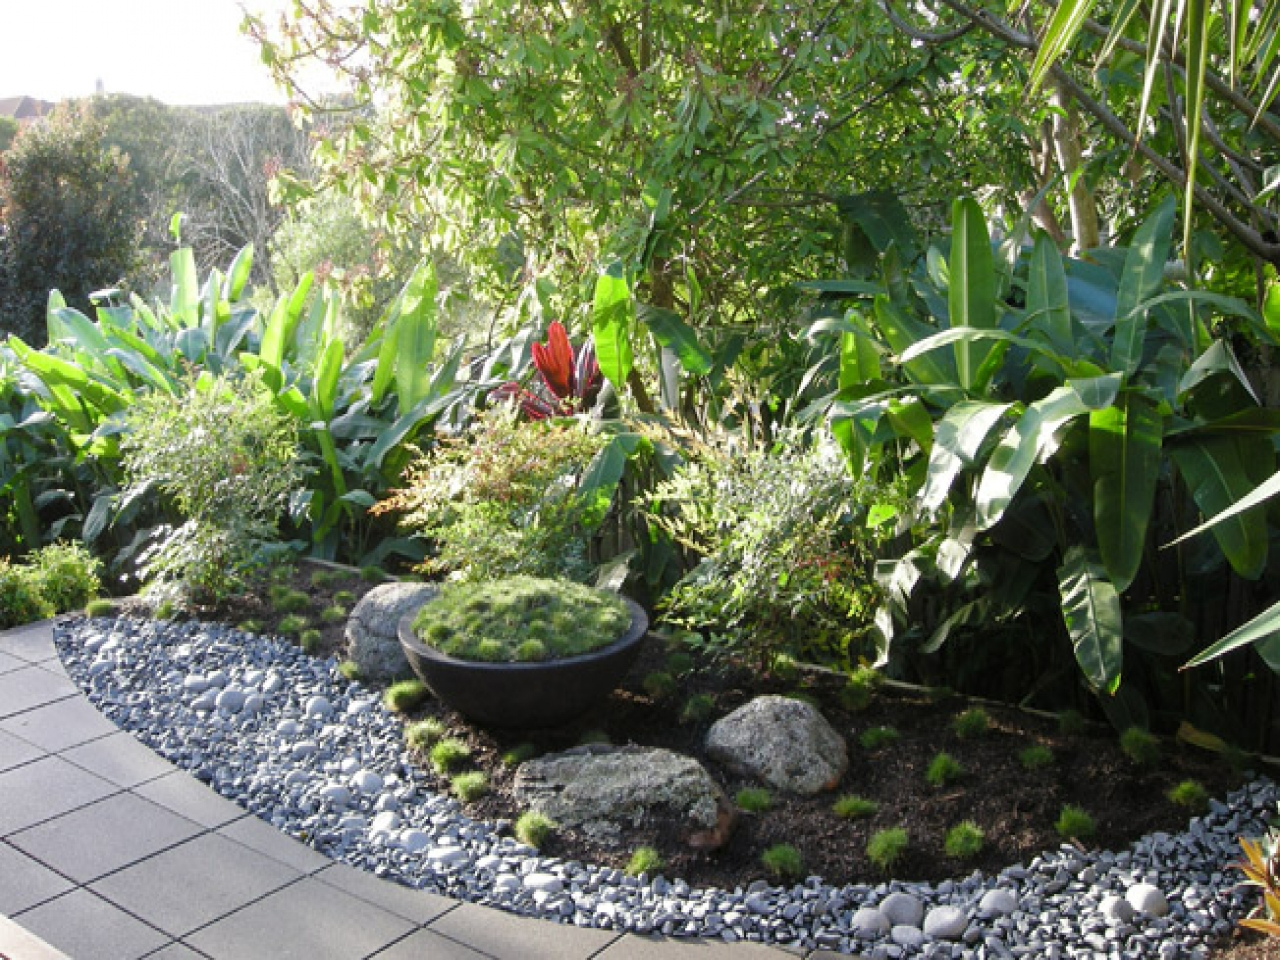 Zen Garden Designs 40 wonderful zen garden designs zen garden designs 9 Awesome Zen Garden Designs For Small Spaces